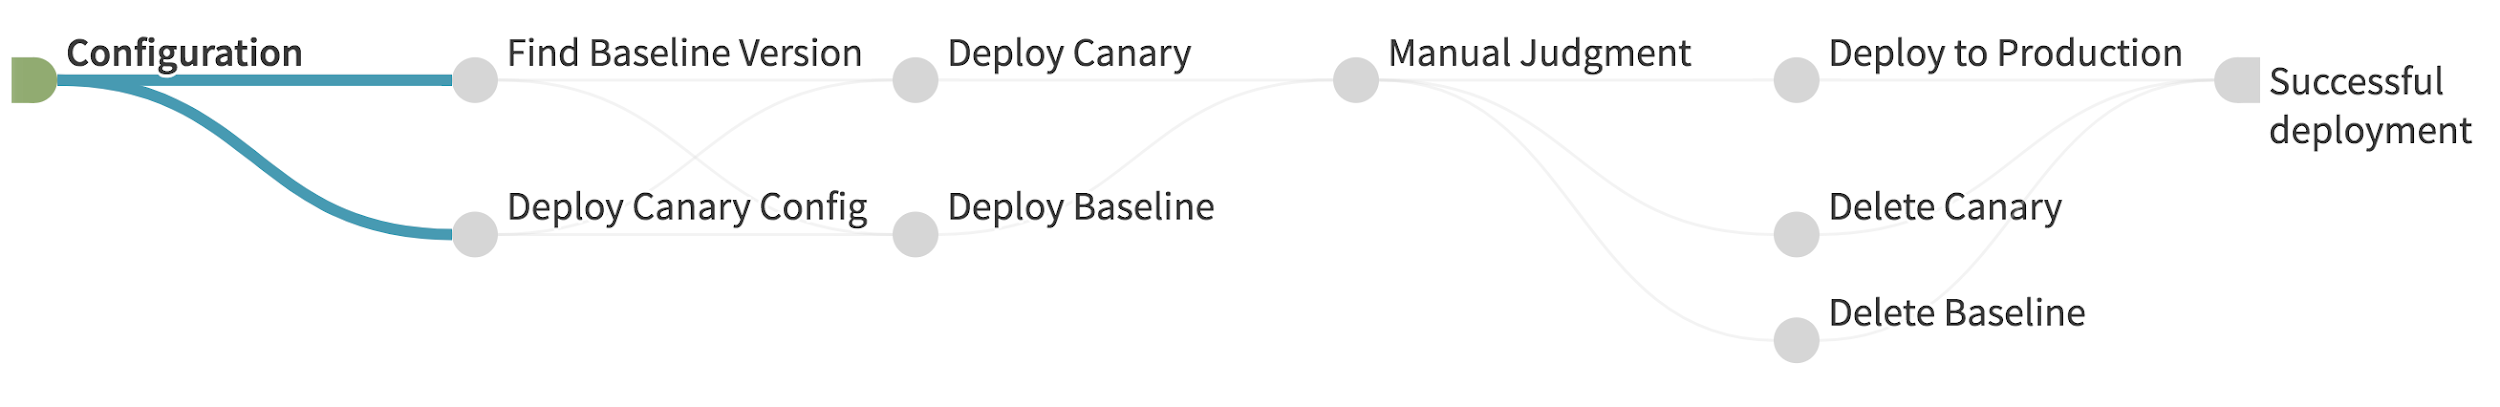 Illustration of the stages of a canary deployment pipeline.